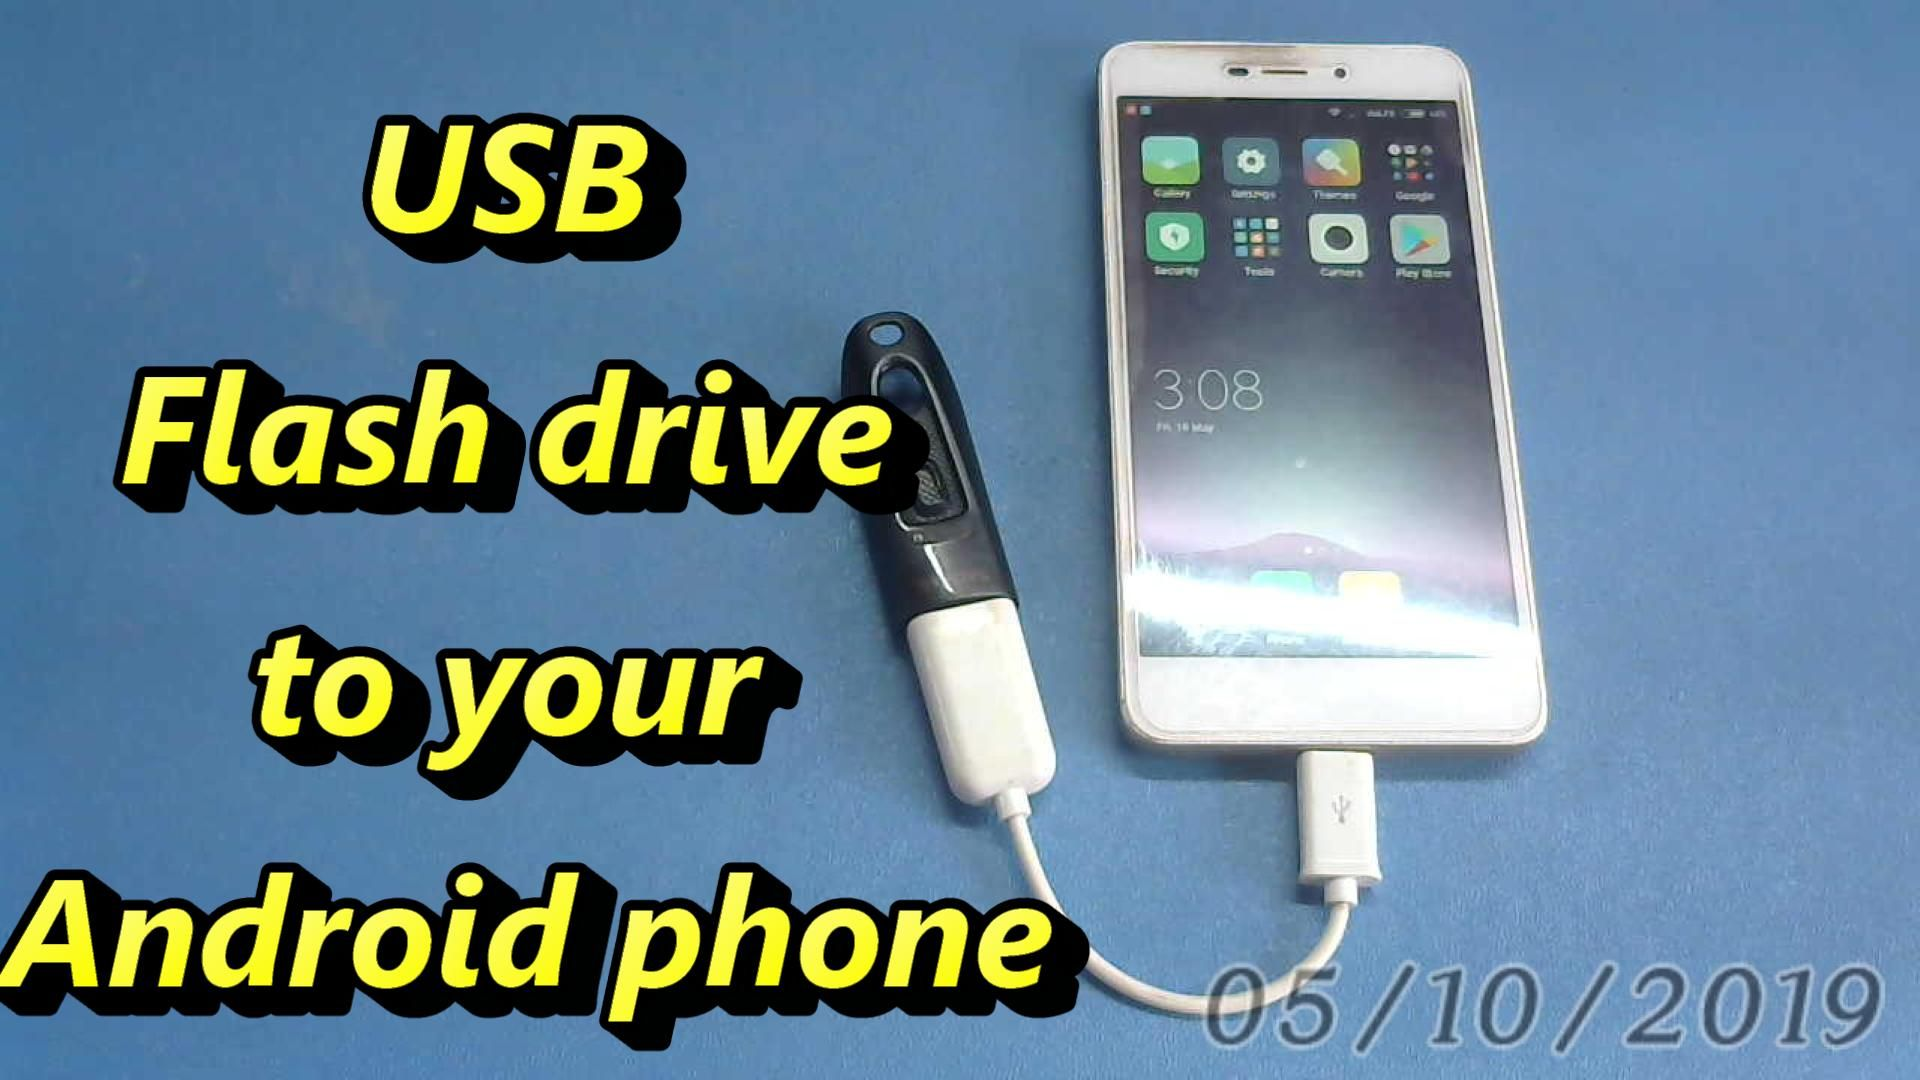 How to connect a USB flash drive to your Android phone